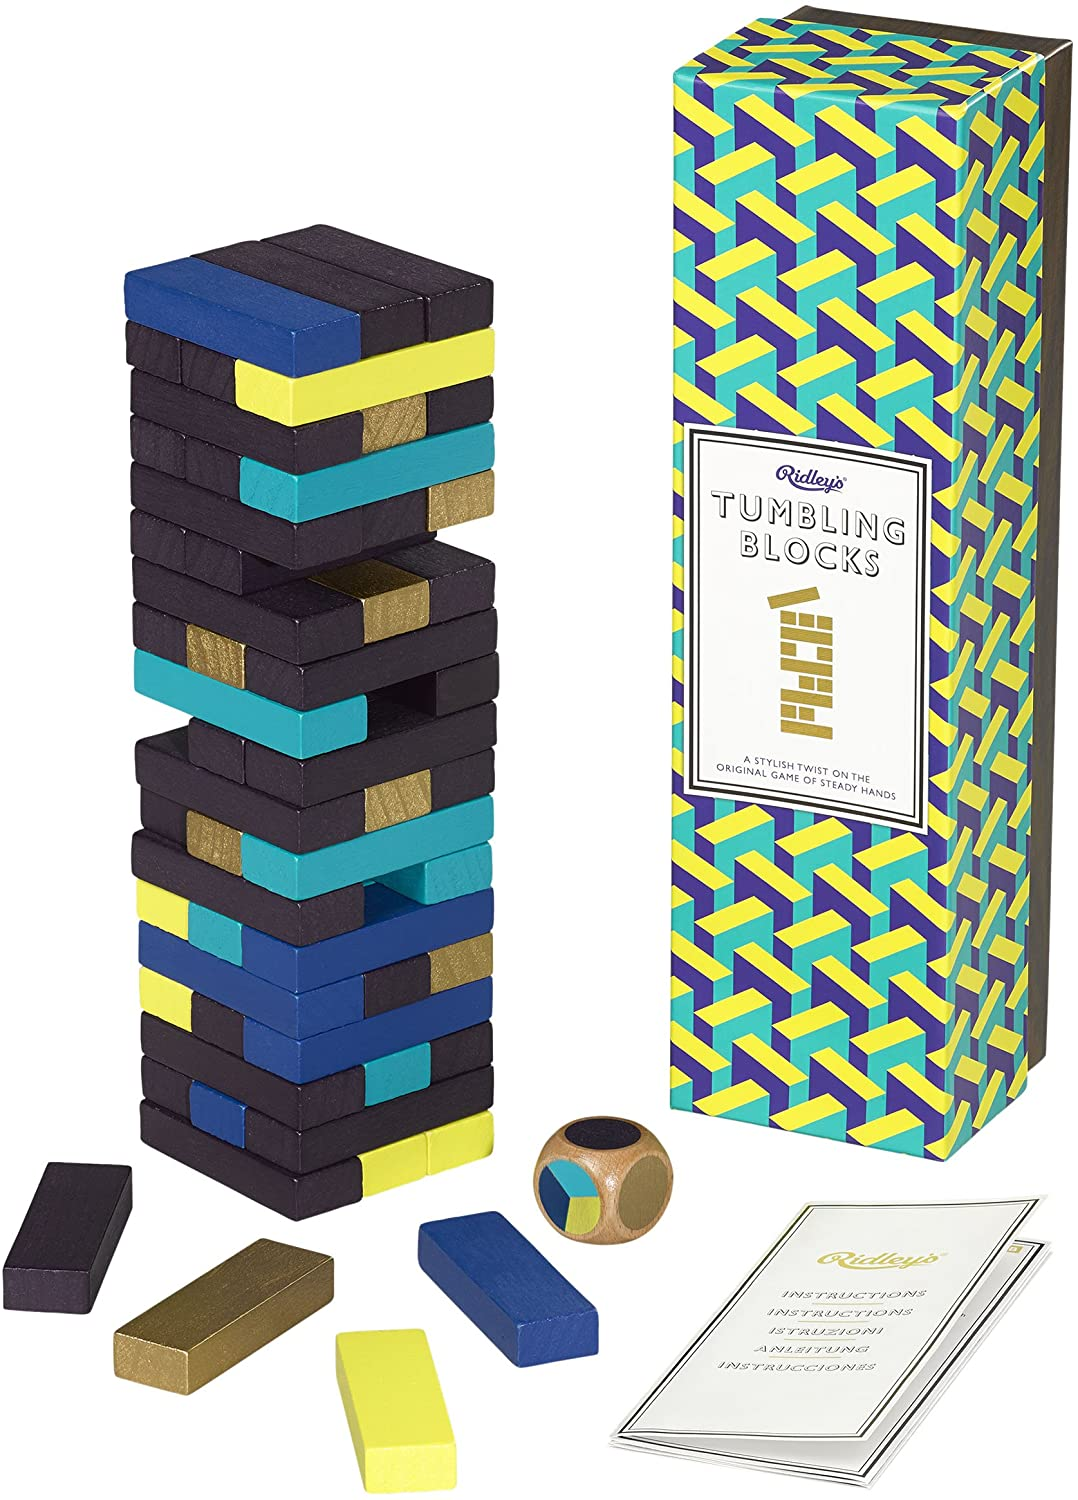 Ridleys Tumbling Blocks w/colours and dice